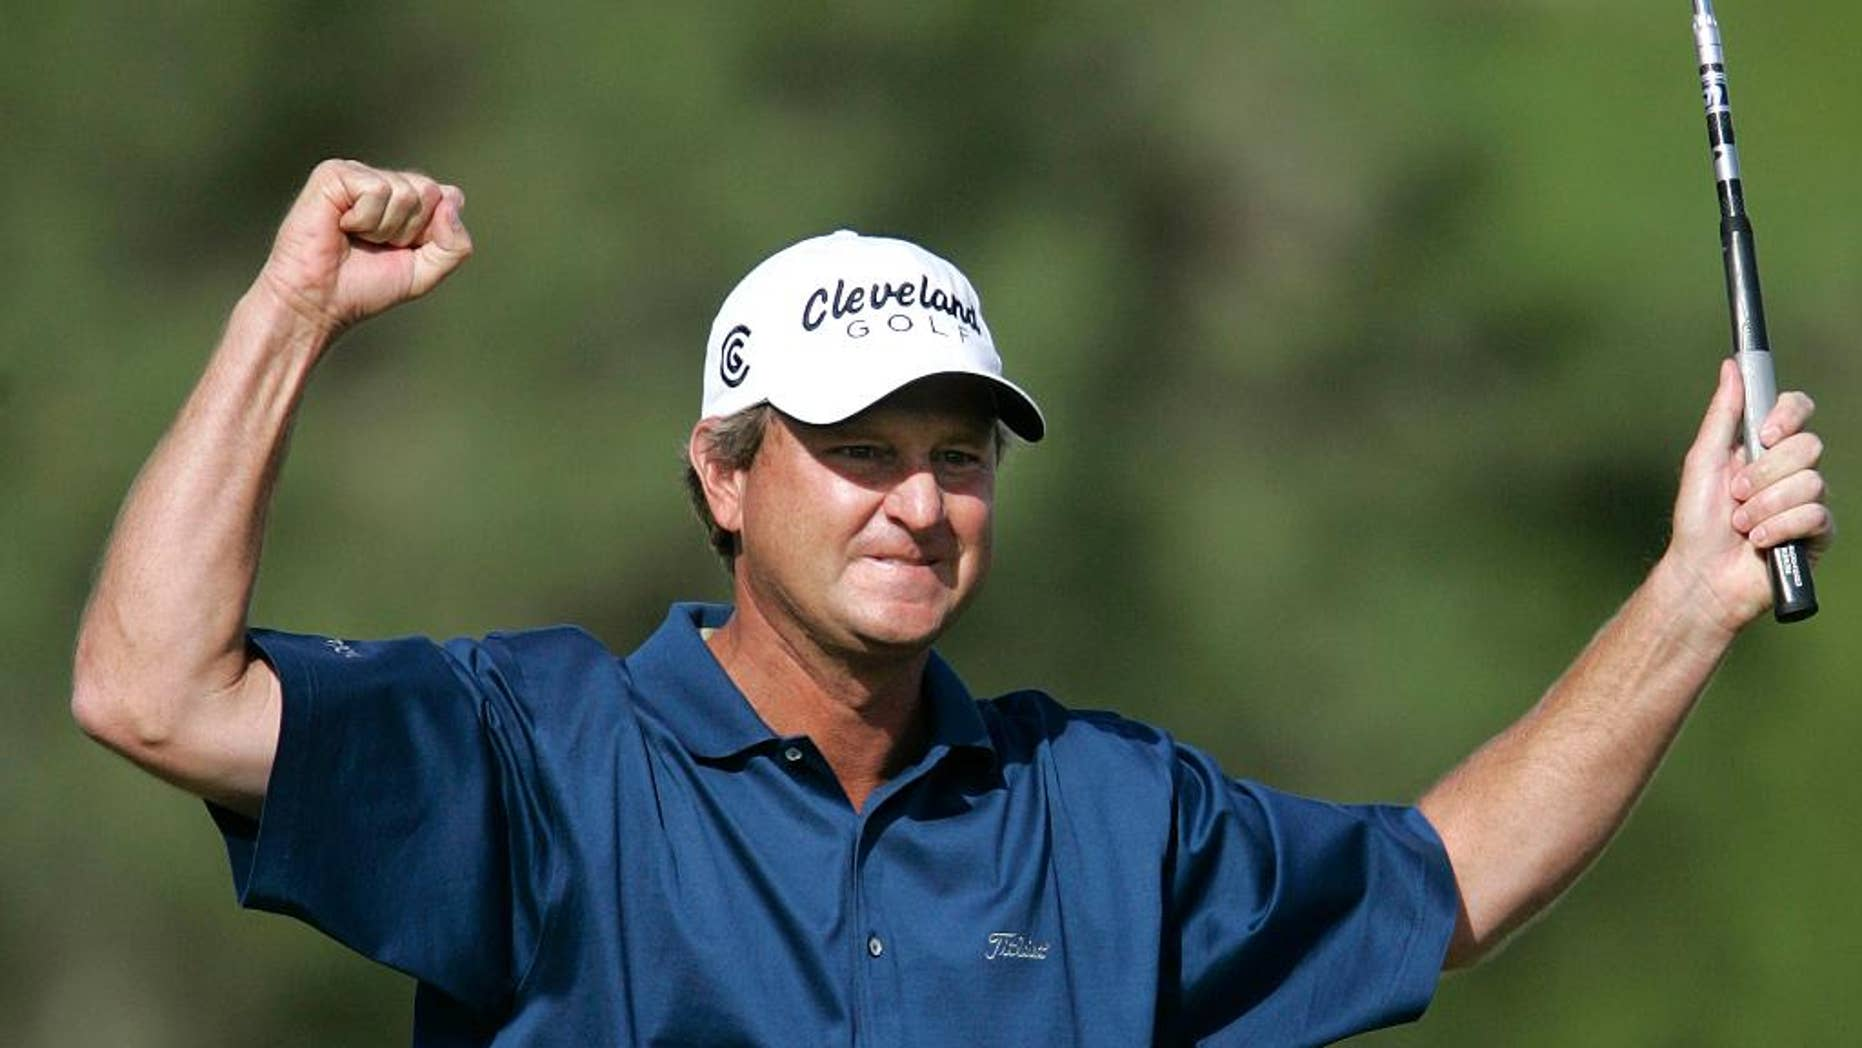 FILE - In this Sunday, Oct. 16, 2005 file photo, Wes Short Jr. reacts after sinking a birdie putt on the 18th hole to face Jim Furyk in the playoff during the final day of  Michelin Championship  in Las Vegas. Short first tried to qualify for the U.S. Open when he was a high school senior in Texas. He finally made it 34 years later at age 52. The U.S. Open is June 16-19, 2016 at Oakmont  (AP Photo/Jae C. Hong, File)